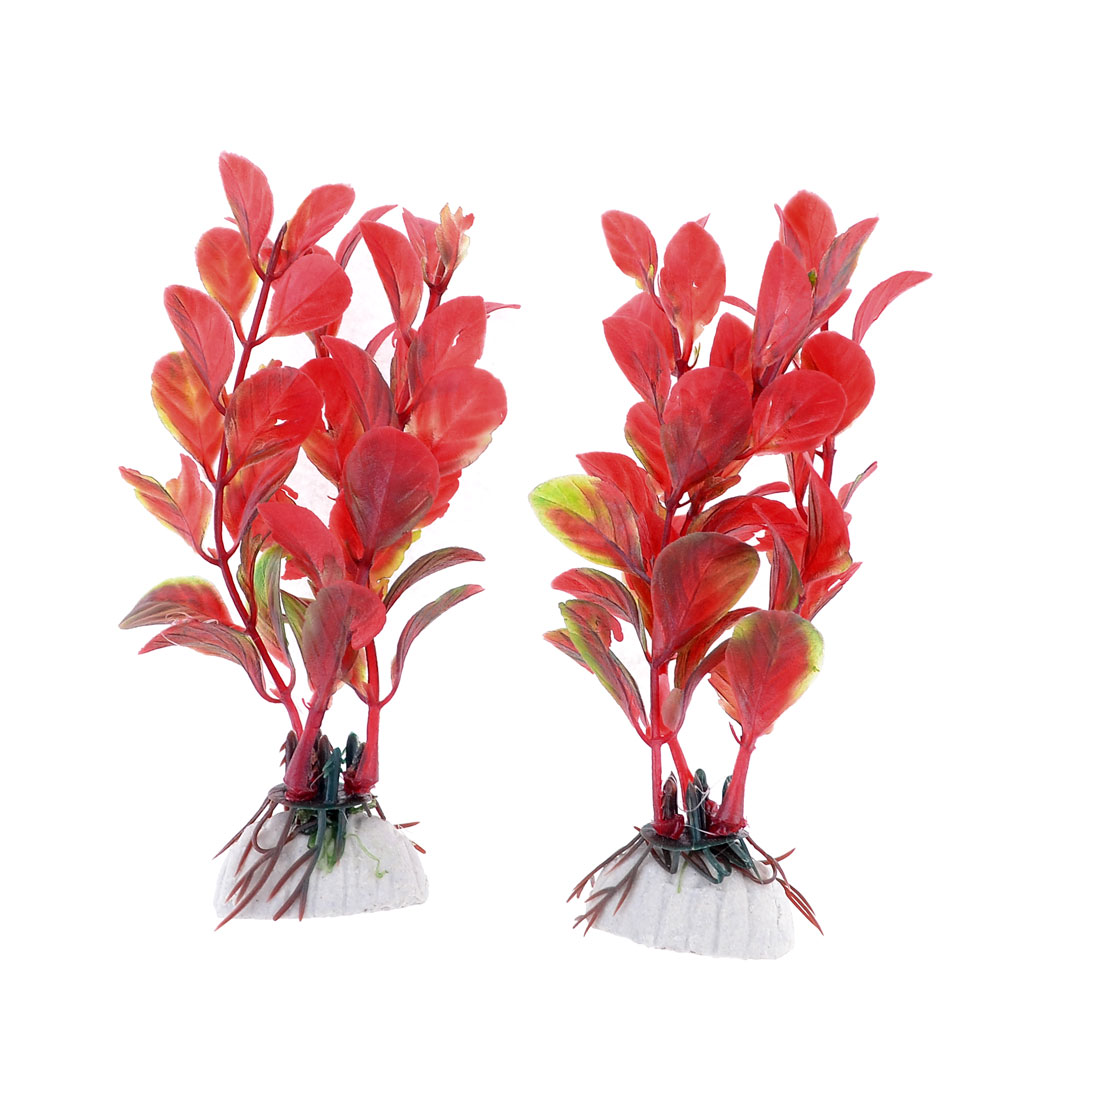 "Aquarium Landscaping Dark Red 4.3"" Long Round Leaf Plastic Plants 2 Pcs"